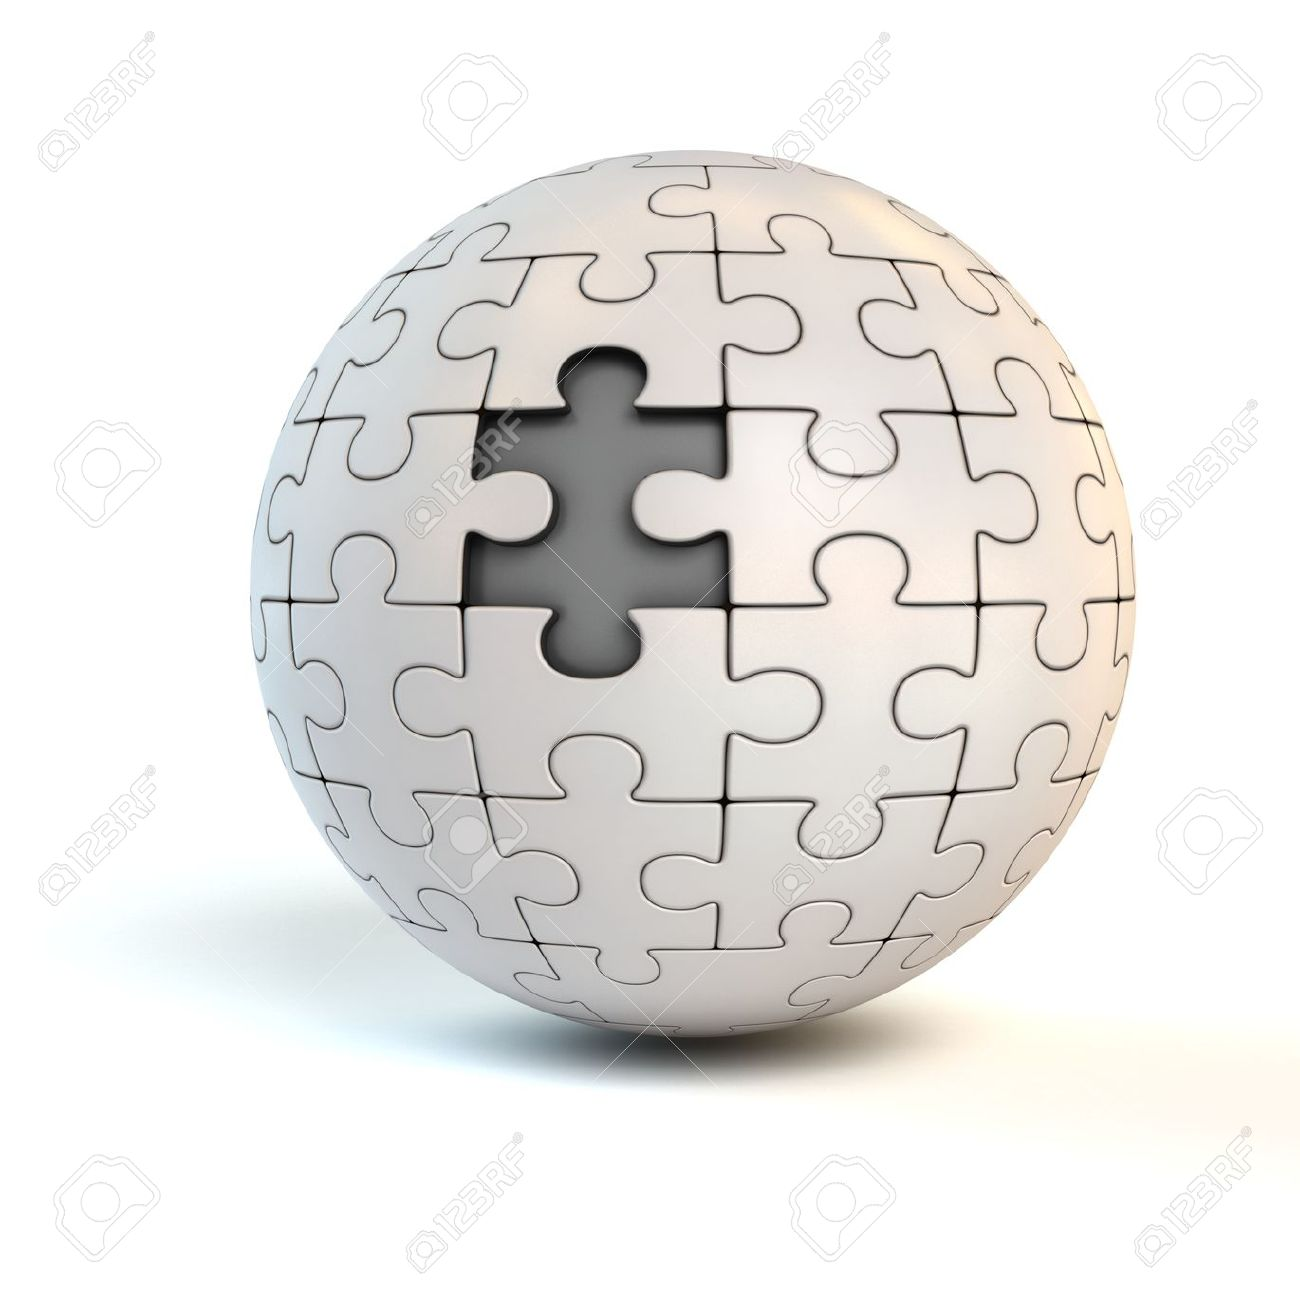 Missing Piece On Spherical Jigsaw